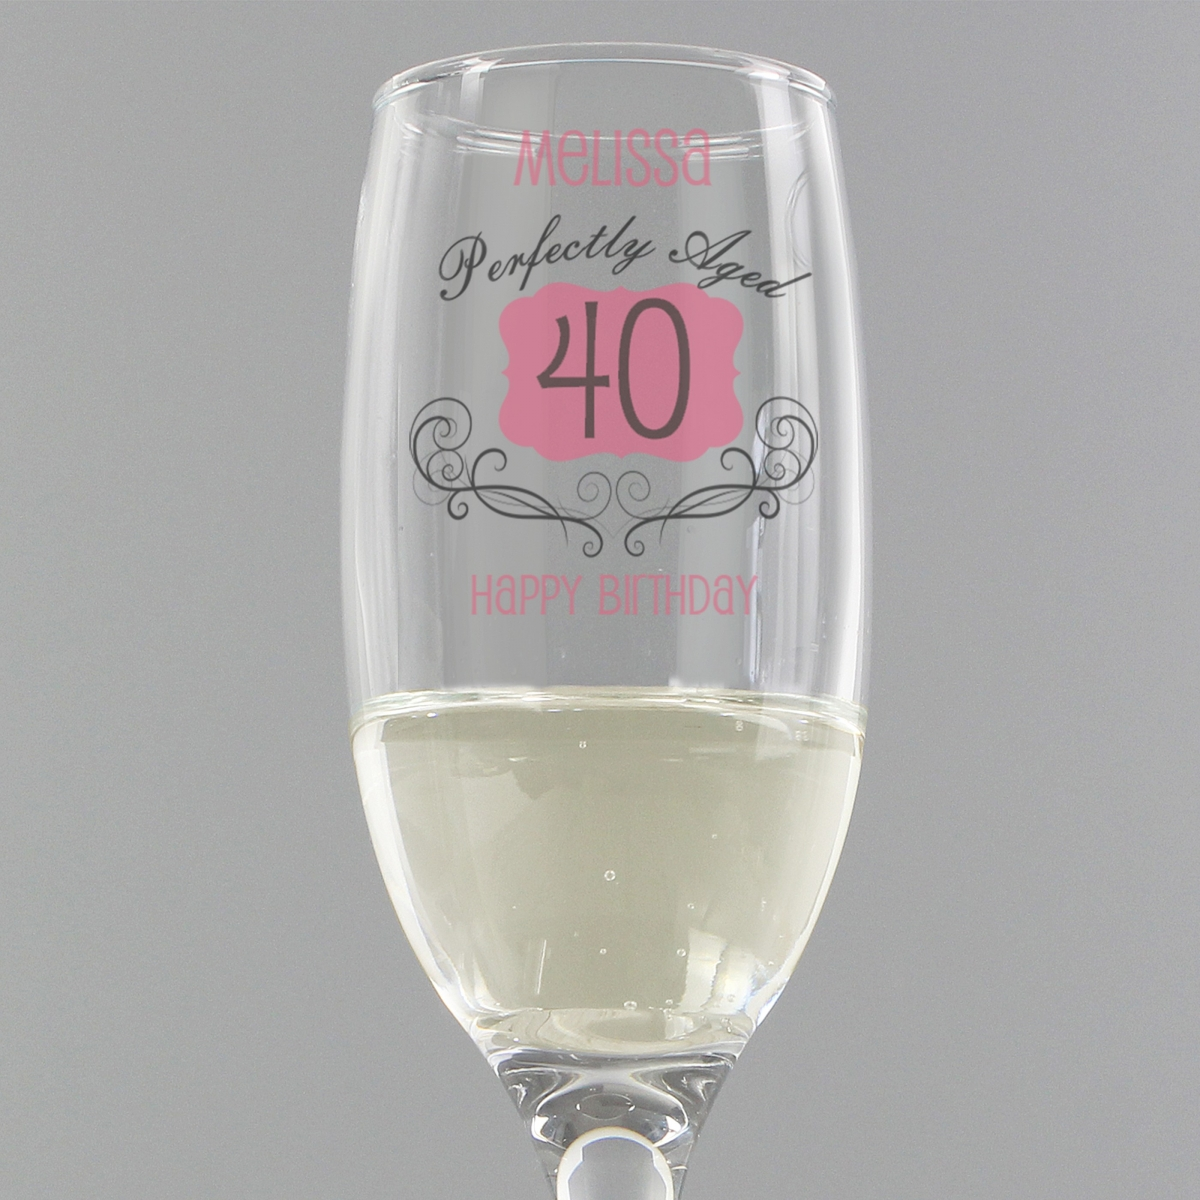 Personalised Perfectly Aged Champagne Flute